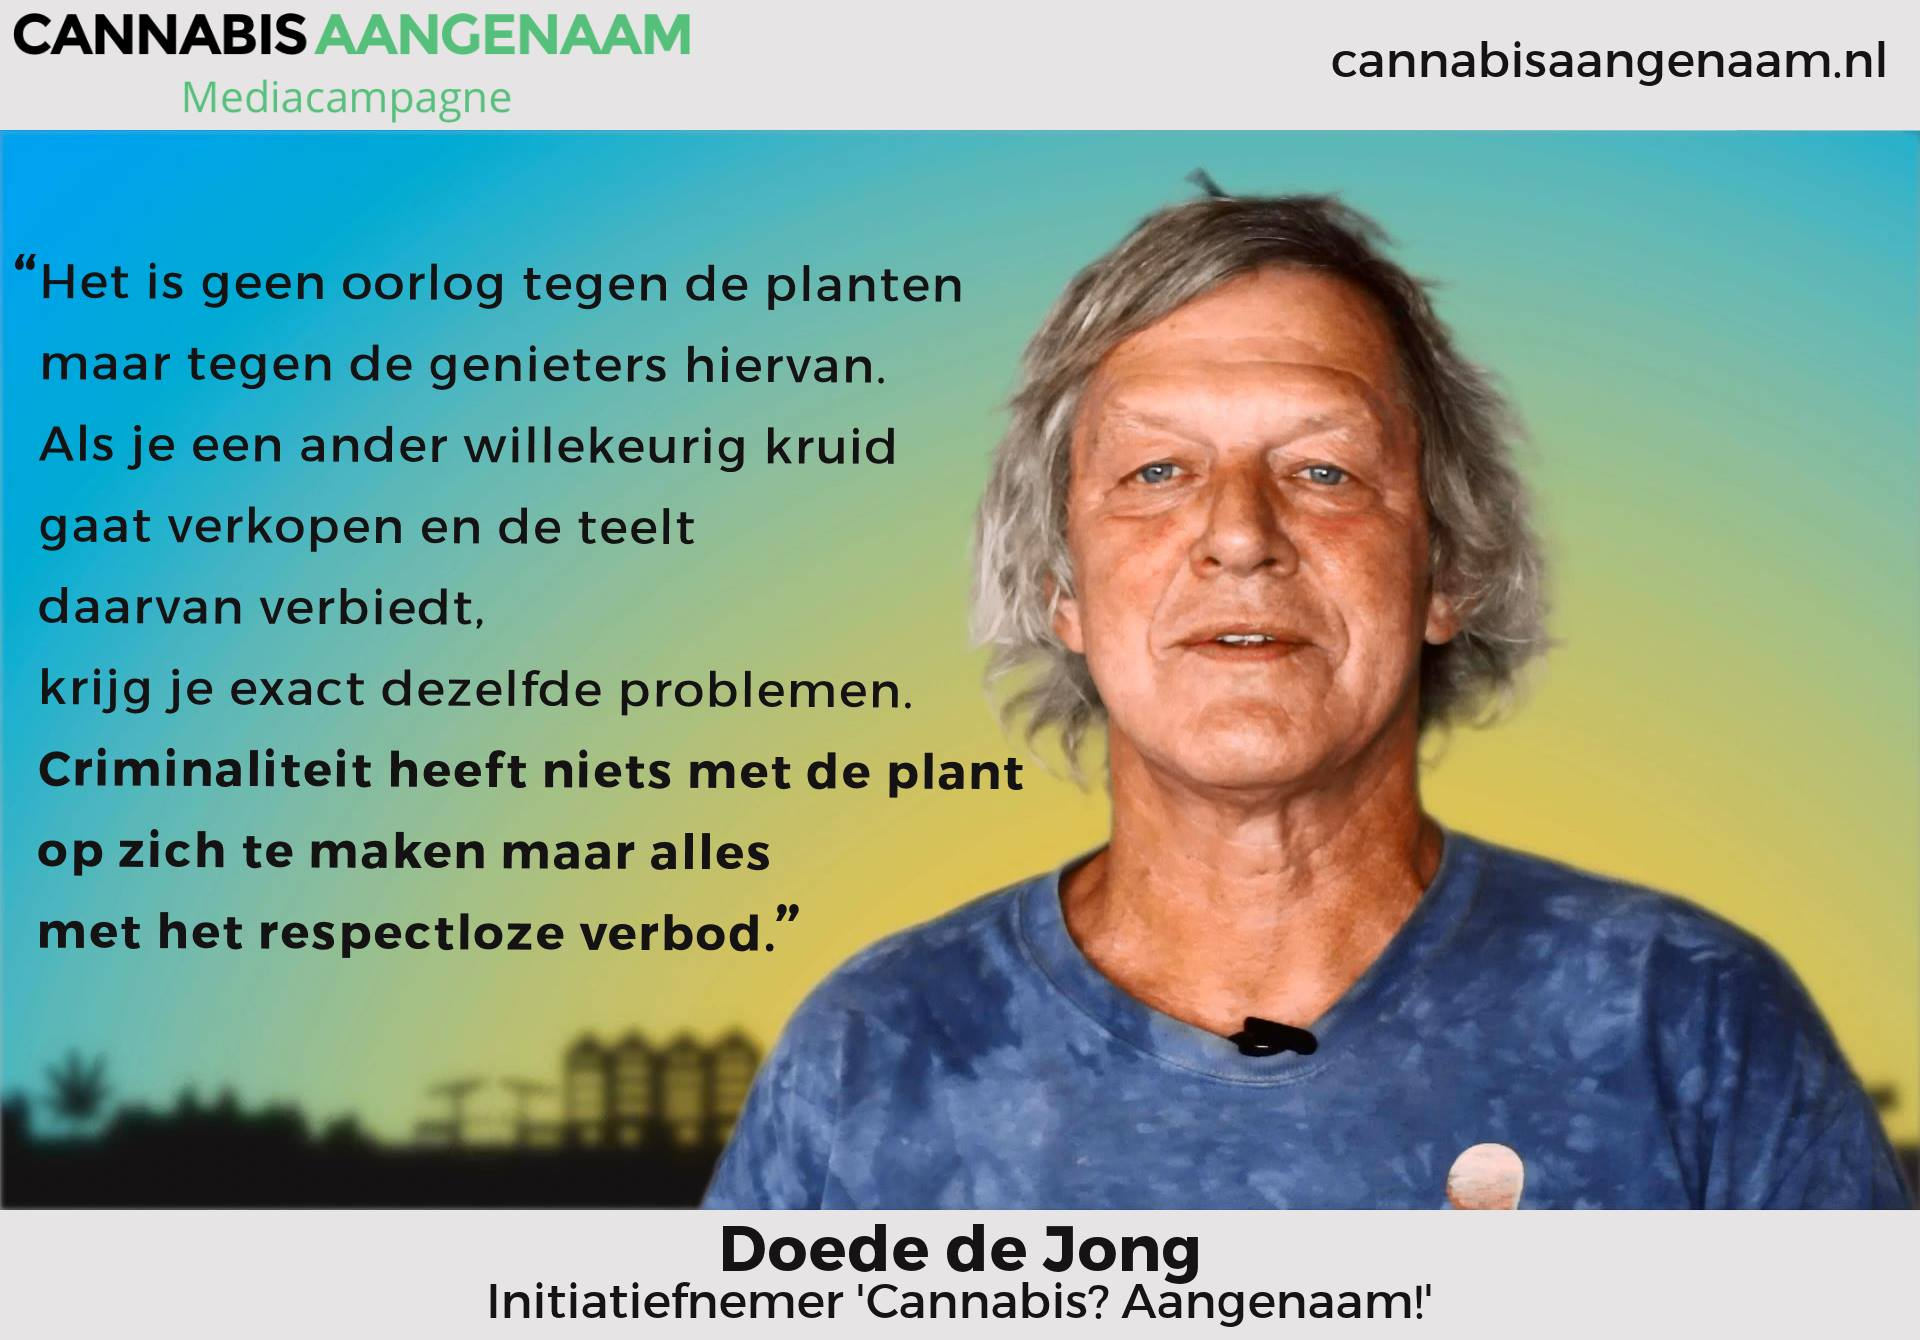 Citaten Democratie Versuri : Citaten over drugs en prohibitie voc